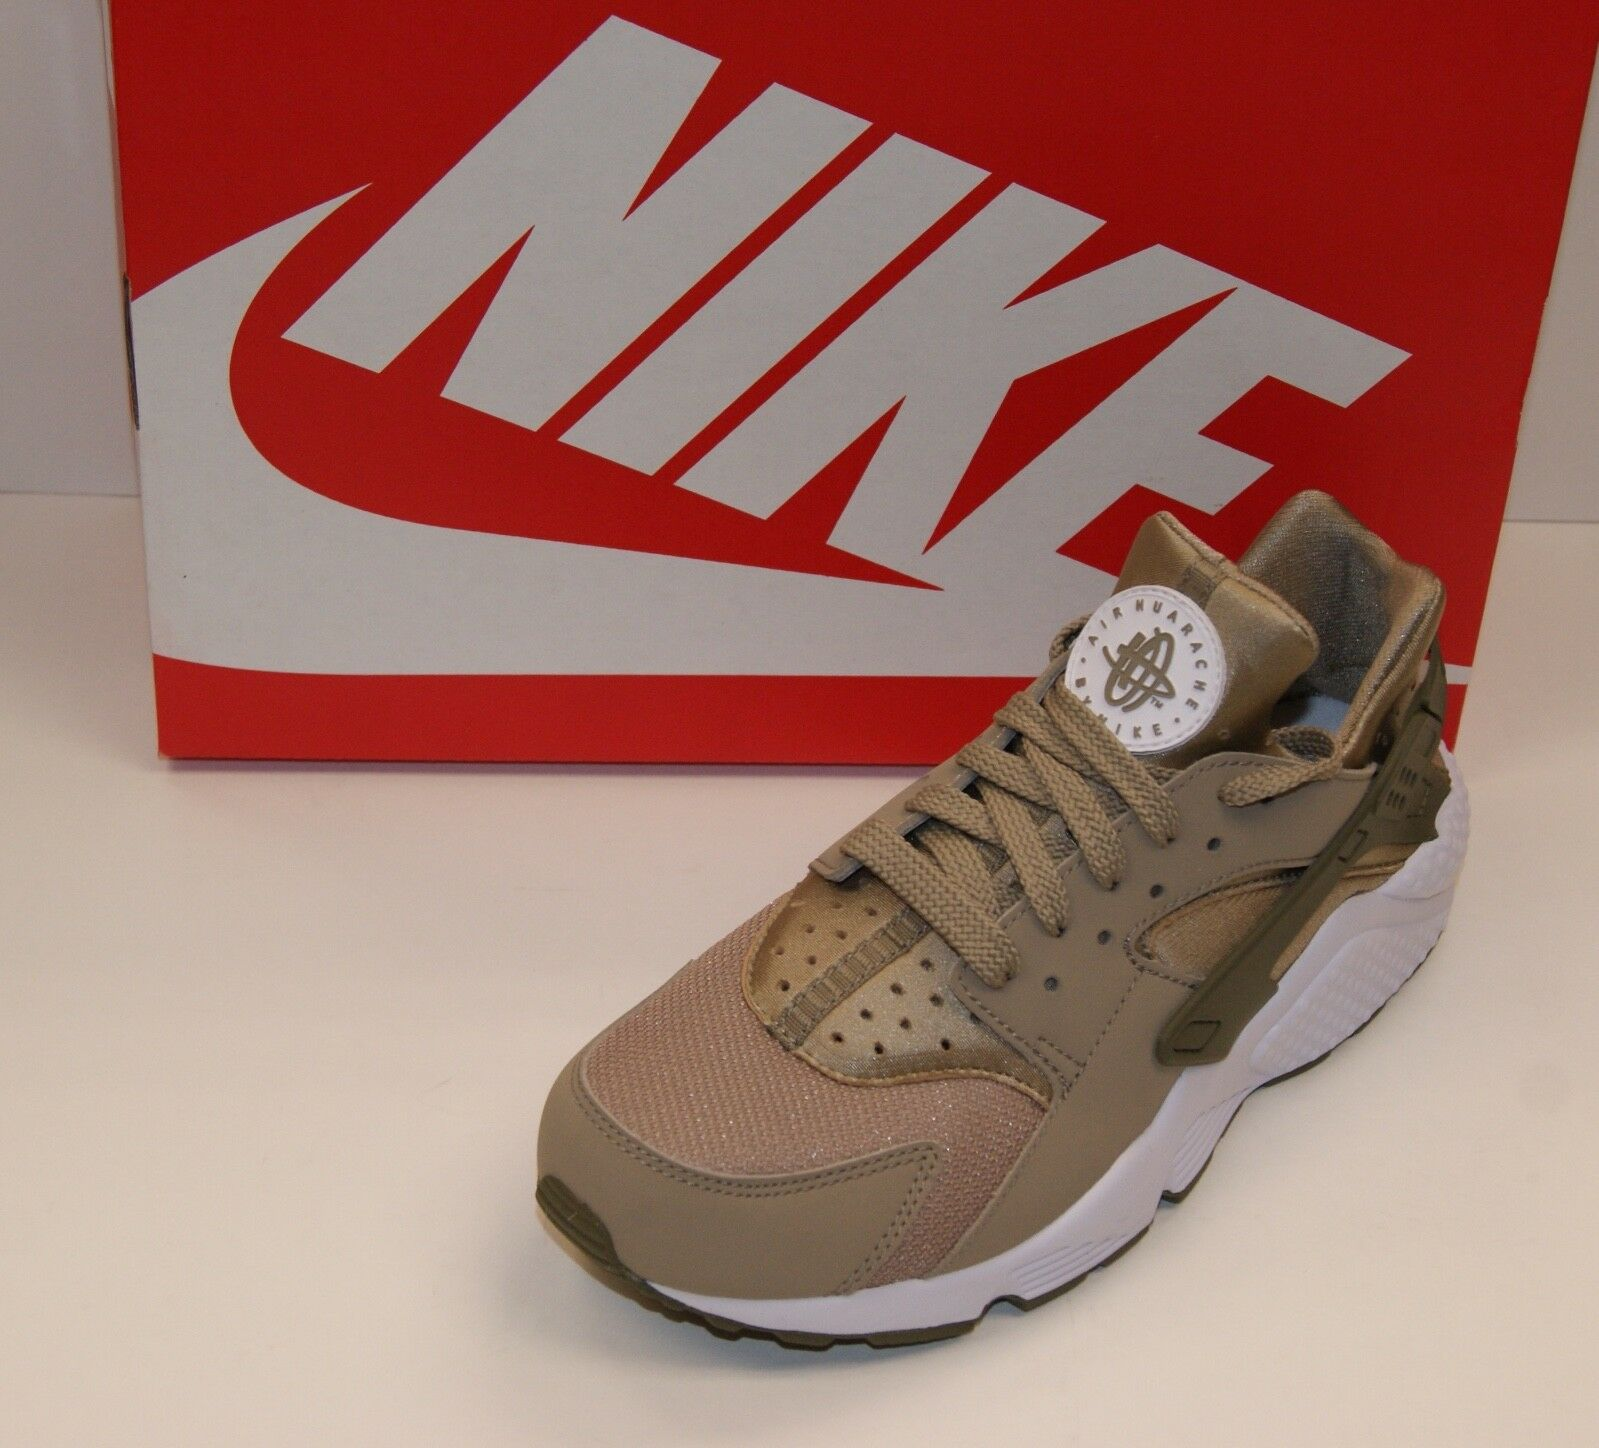 NIKE AIR HUARACHE Khaki/Olive/White Men's Running Shoes 318429-200 Brand New  Casual wild